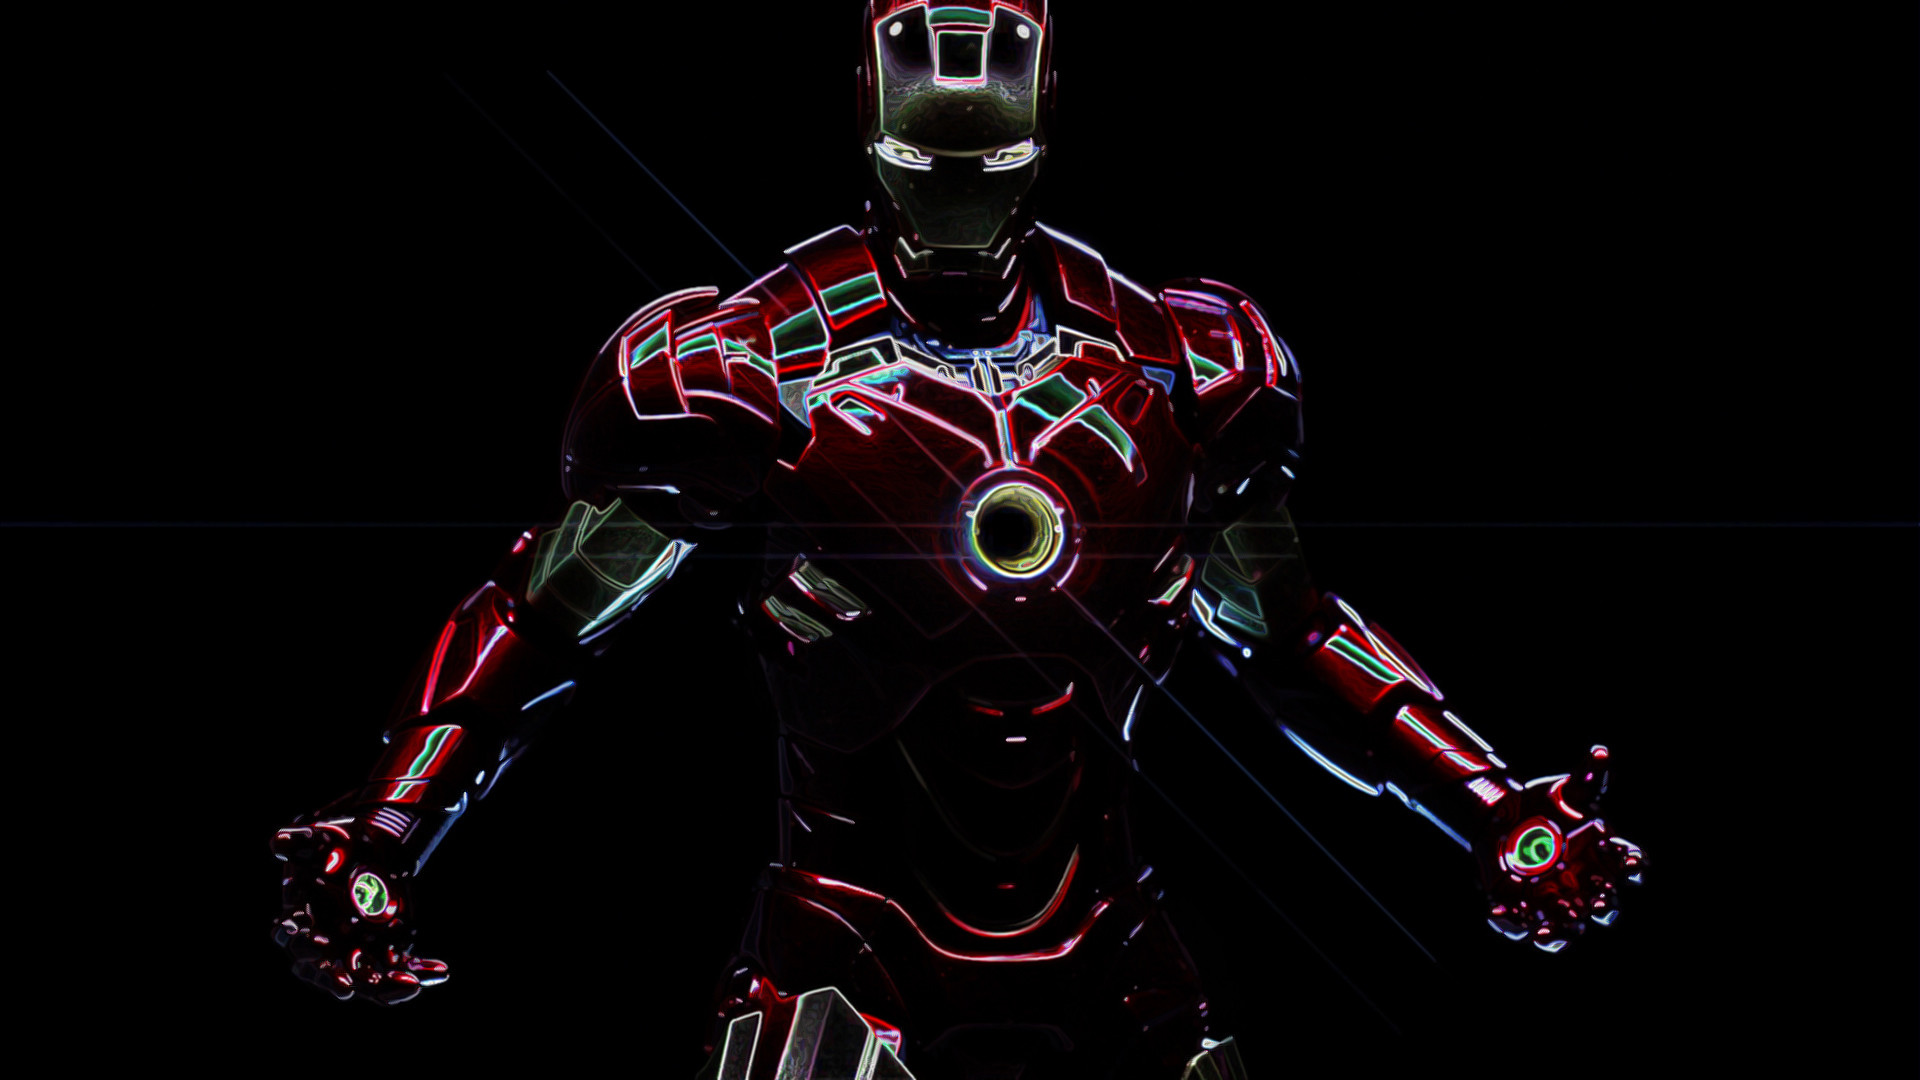 … iron man live clipart for pc free iron man live clipart for pc …